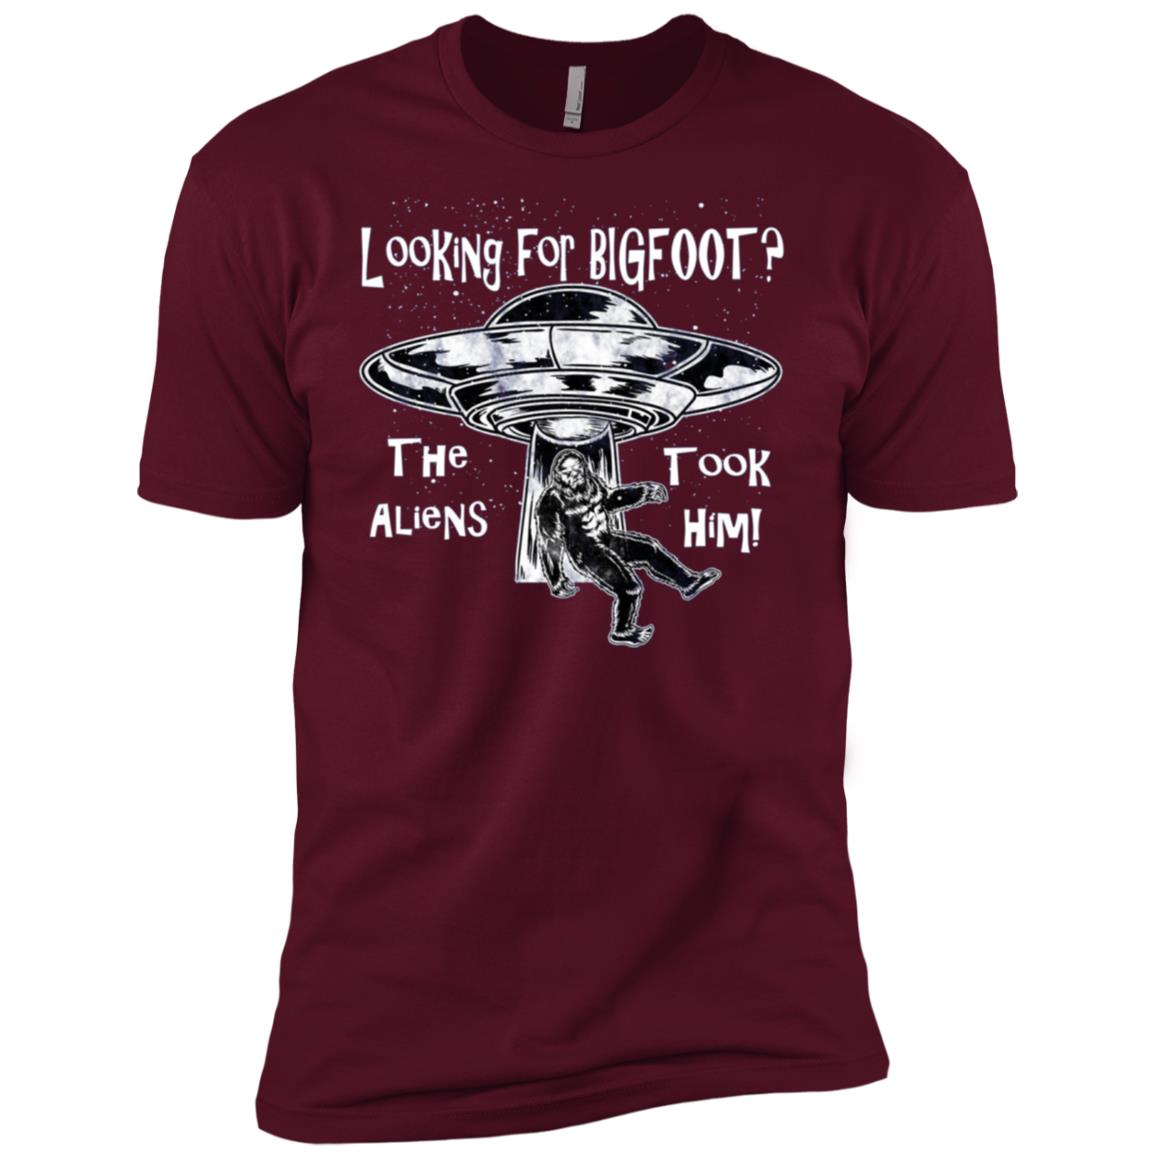 Looking For Bigfoot – The Aliens Took Him Men Short Sleeve T-Shirt